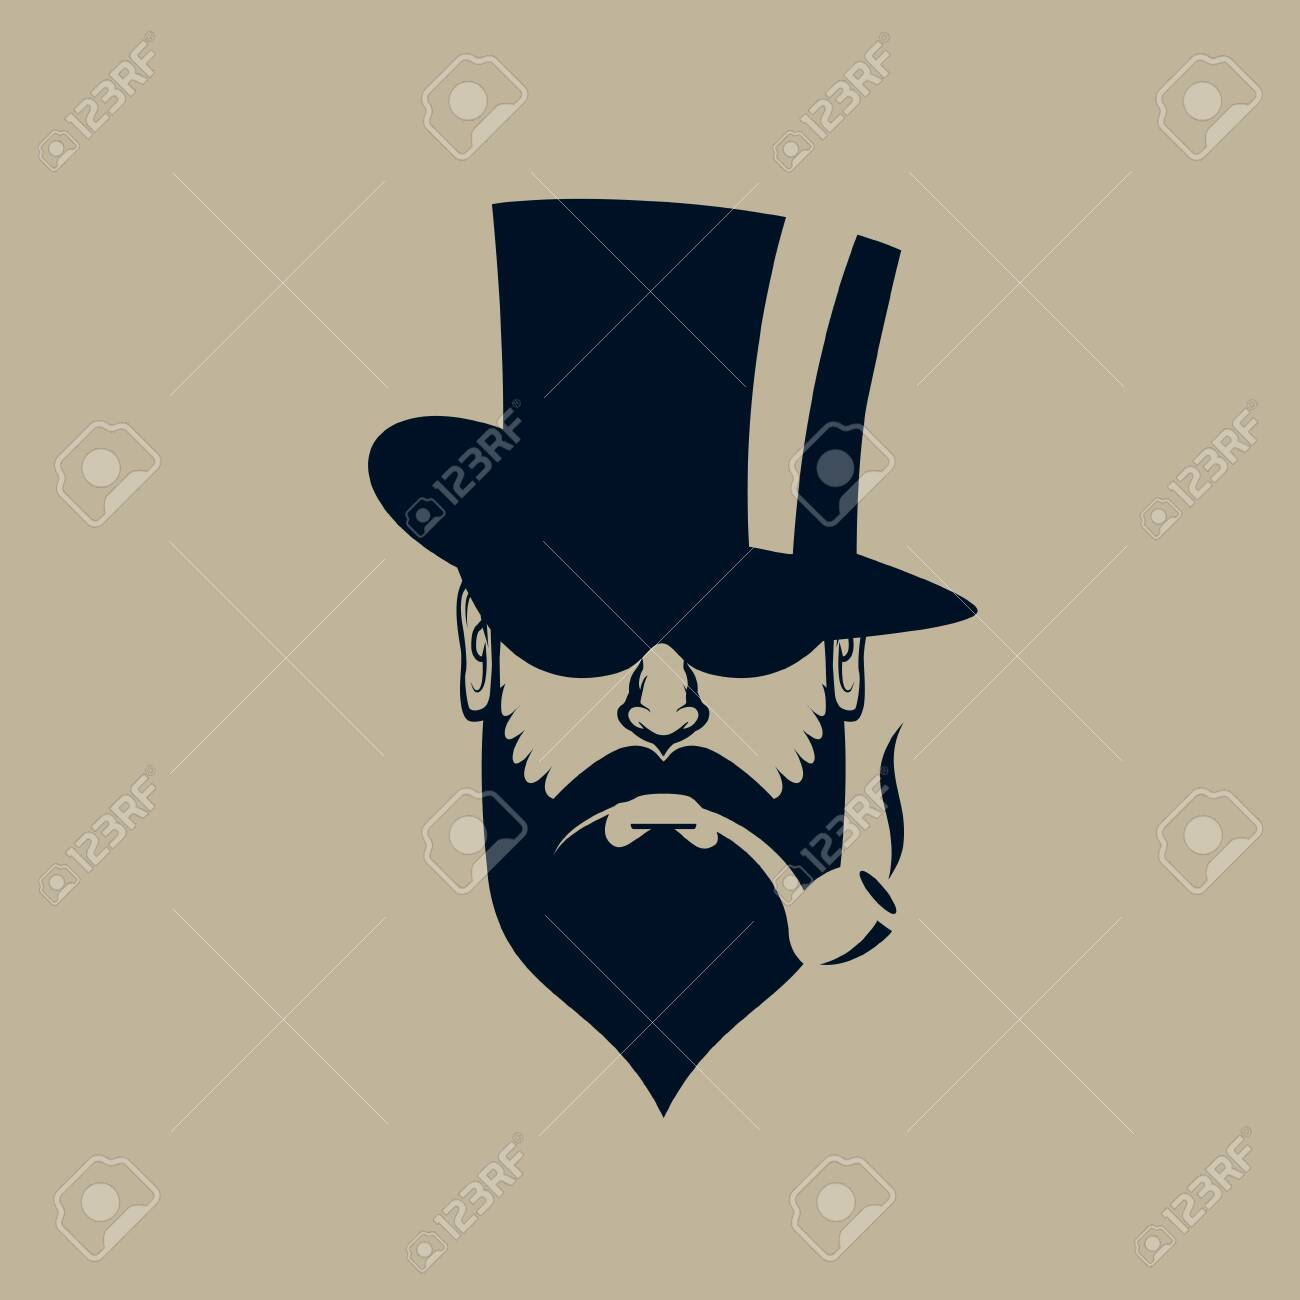 Gentleman Logo Vintage Simple Man Face Icon Royalty Free Cliparts Vectors And Stock Illustration Image 130158456